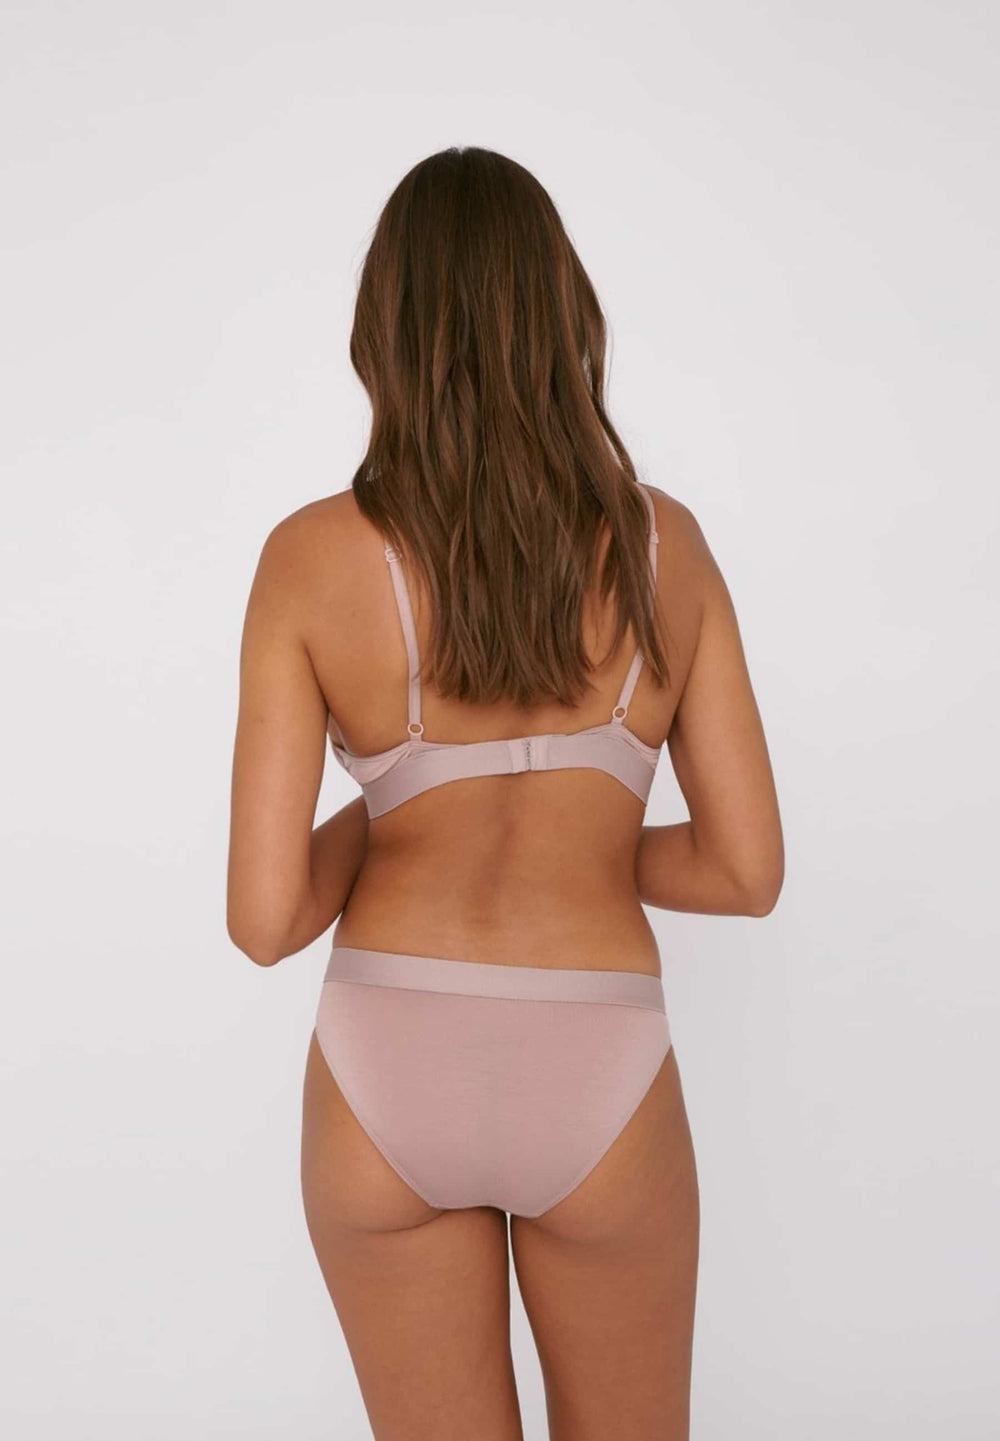 Organic Basics Underwear Soft Touch Briefs 2-pack - Dusty Rose